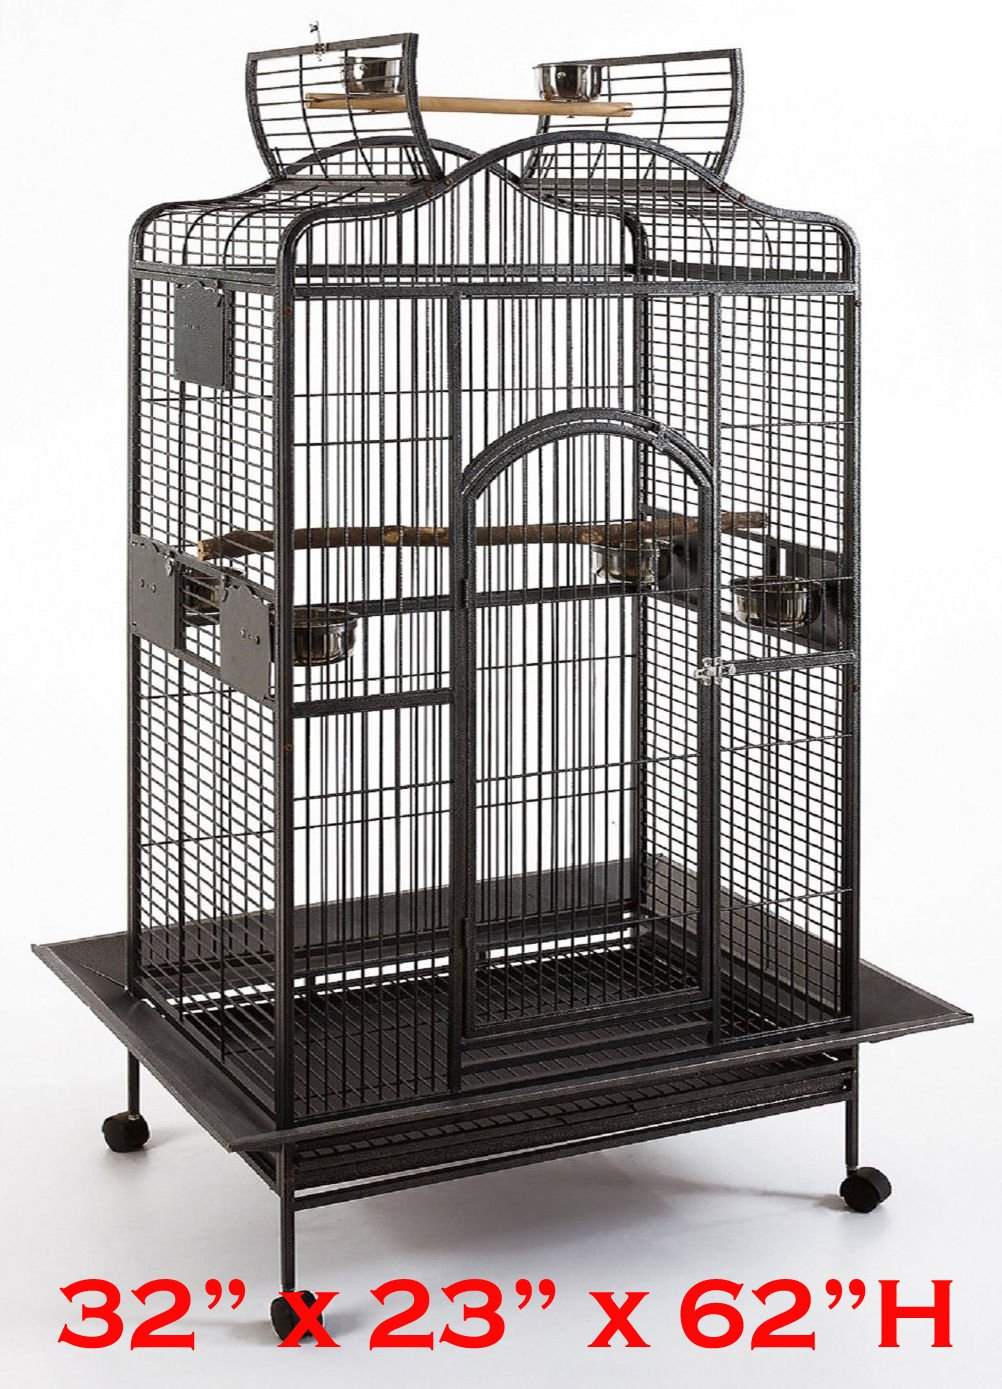 New Large Wrought Iron Open/Close Play Top Bird Parrot Cage, Include Metal Seed Guard Solid Metal Feeder Nest Doors Overall Dimensions: 32'' Wx23 x62 H(with Seed Skirt) (32Wx23Lx61.5H, Black Vein) by Mcage